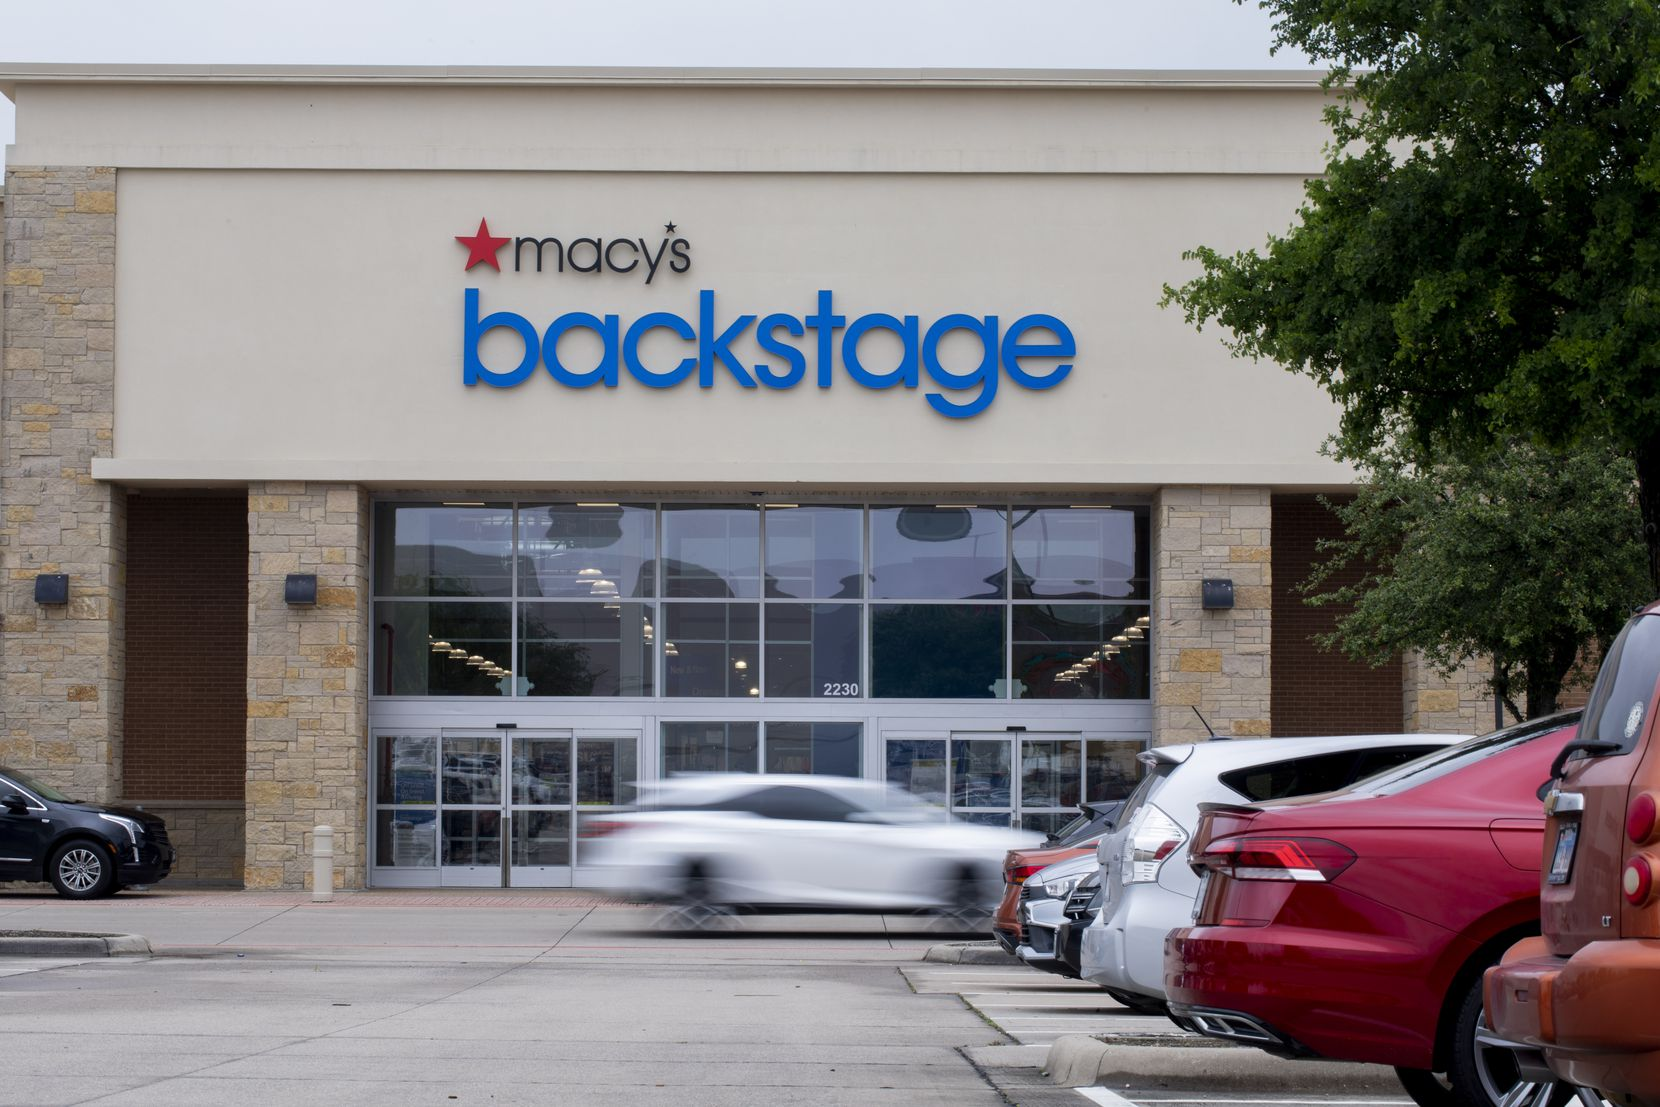 Macy's Backstage store in The Village at Allen opened in May 2021 in a space that used to house Babies R Us.